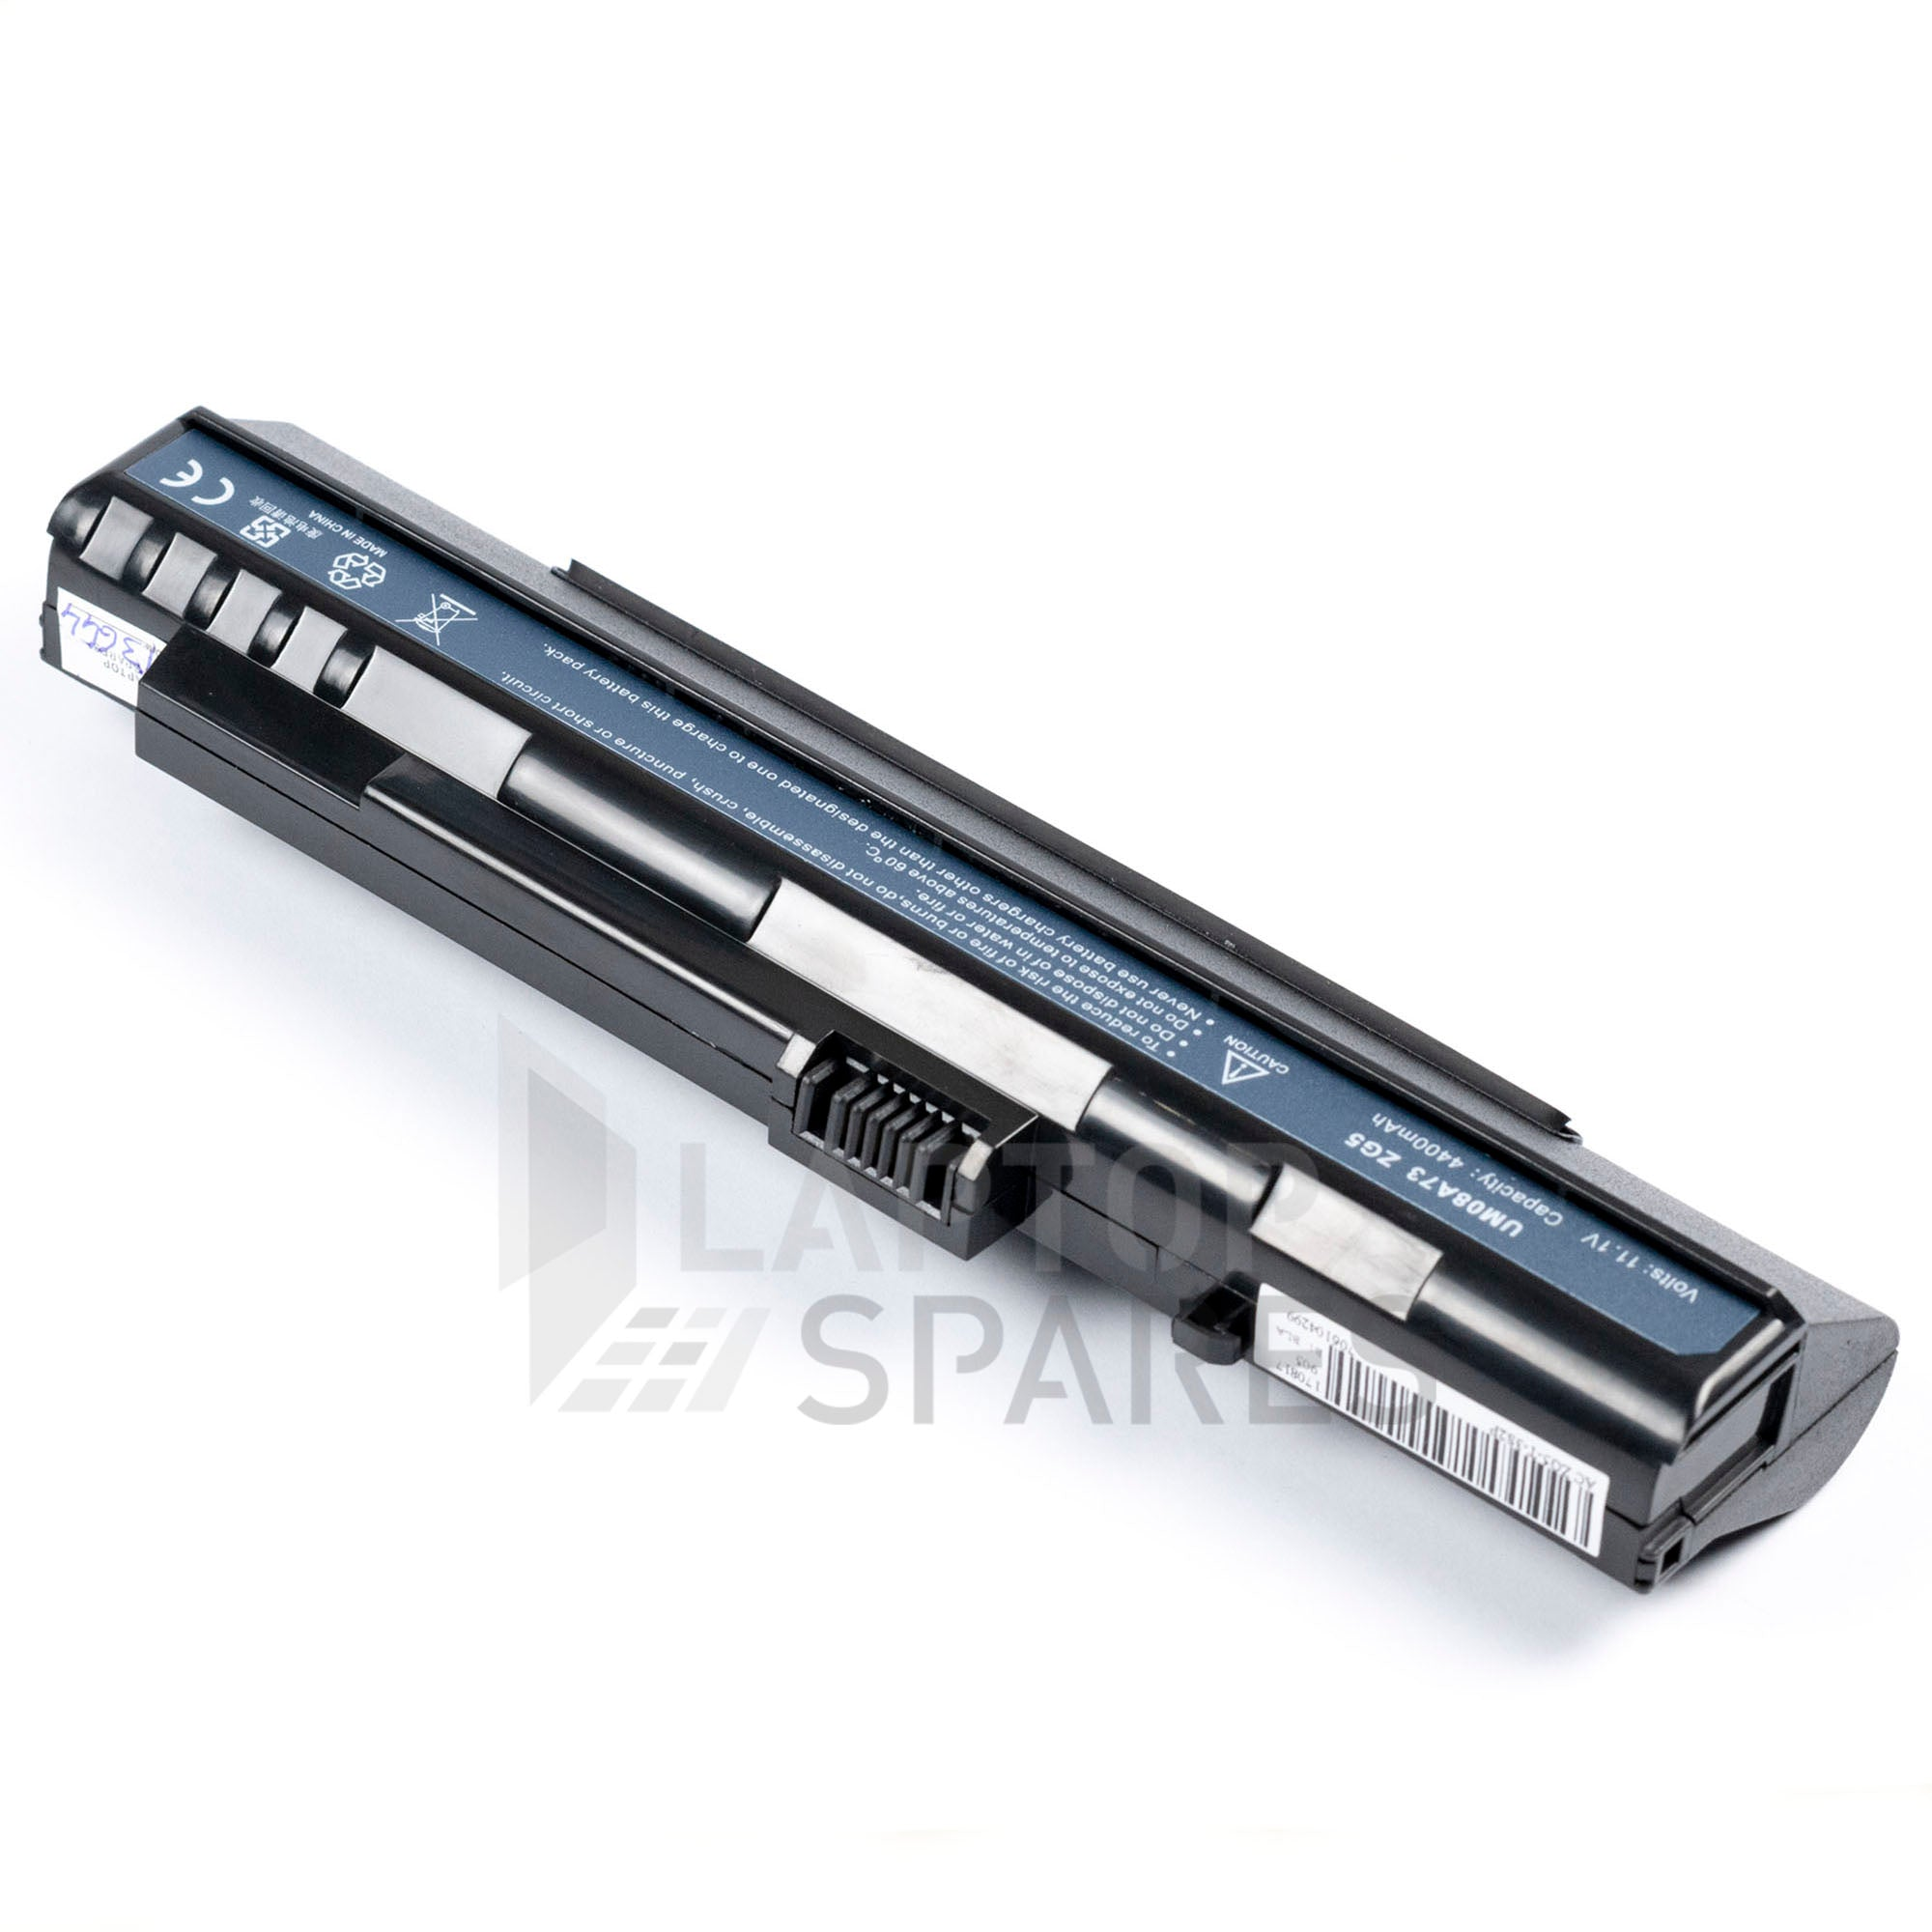 Acer Aspire One ZG5 4400mAh 6 Cell Battery